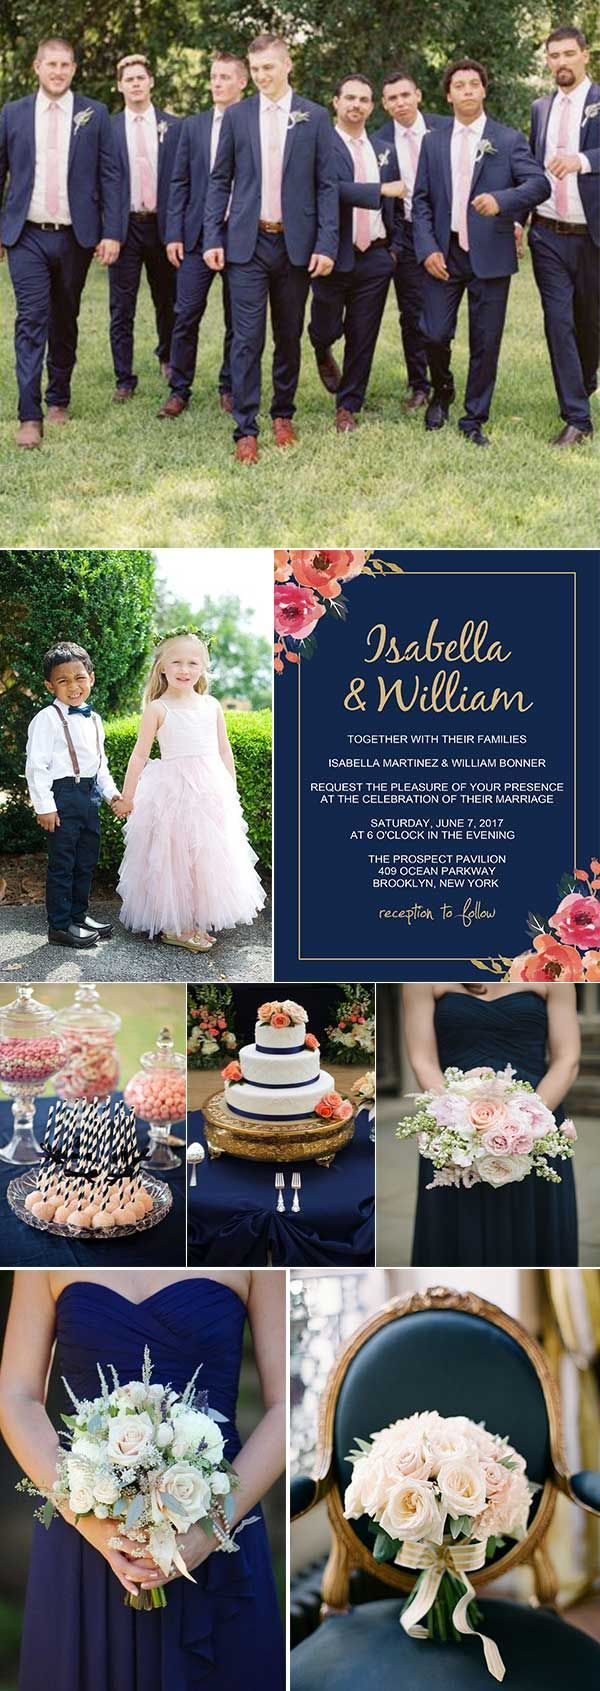 Wedding decorations and ideas december 2018 WEDDING COLOR PRETTIEST  SPRING COLOR PALETTES INCORPORATED